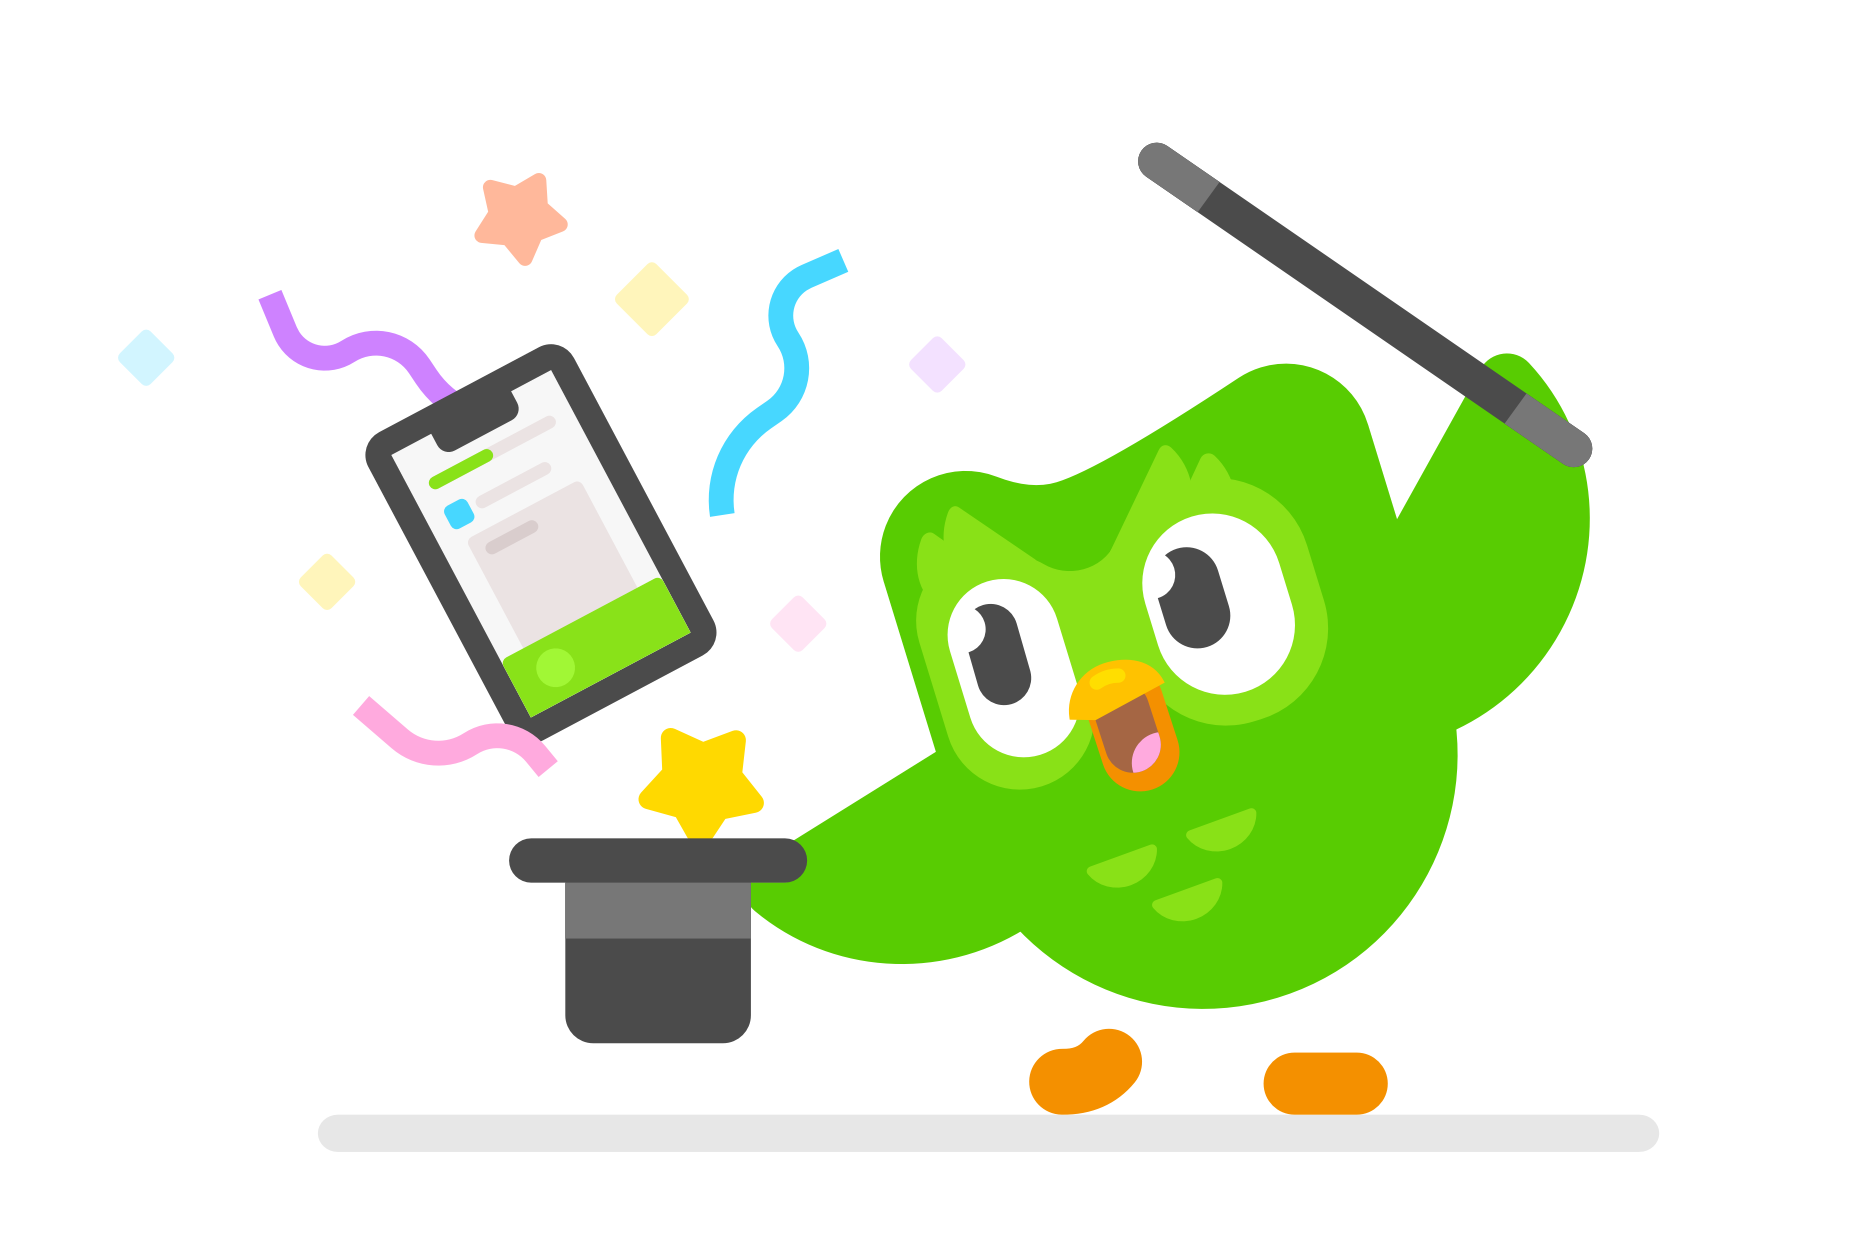 image of Duo owl holding a magic hat and a magic wand and watching a mobile phone with a Duolingo lesson jump out of the hat with stars and sparkles around it